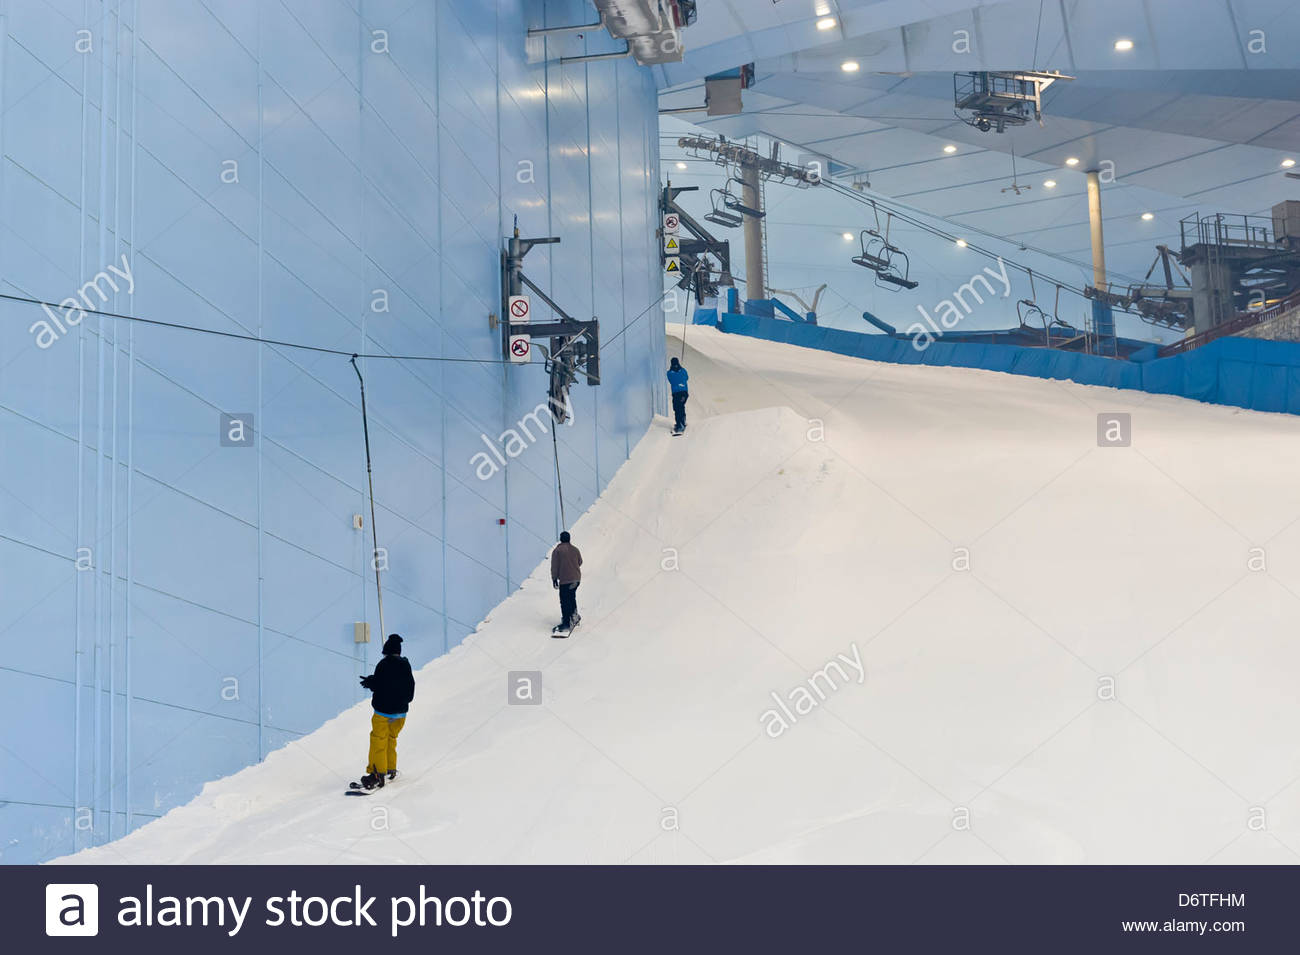 Snowboarding At Ski Dubai An Indoor Slope In The Mall Of Emirates